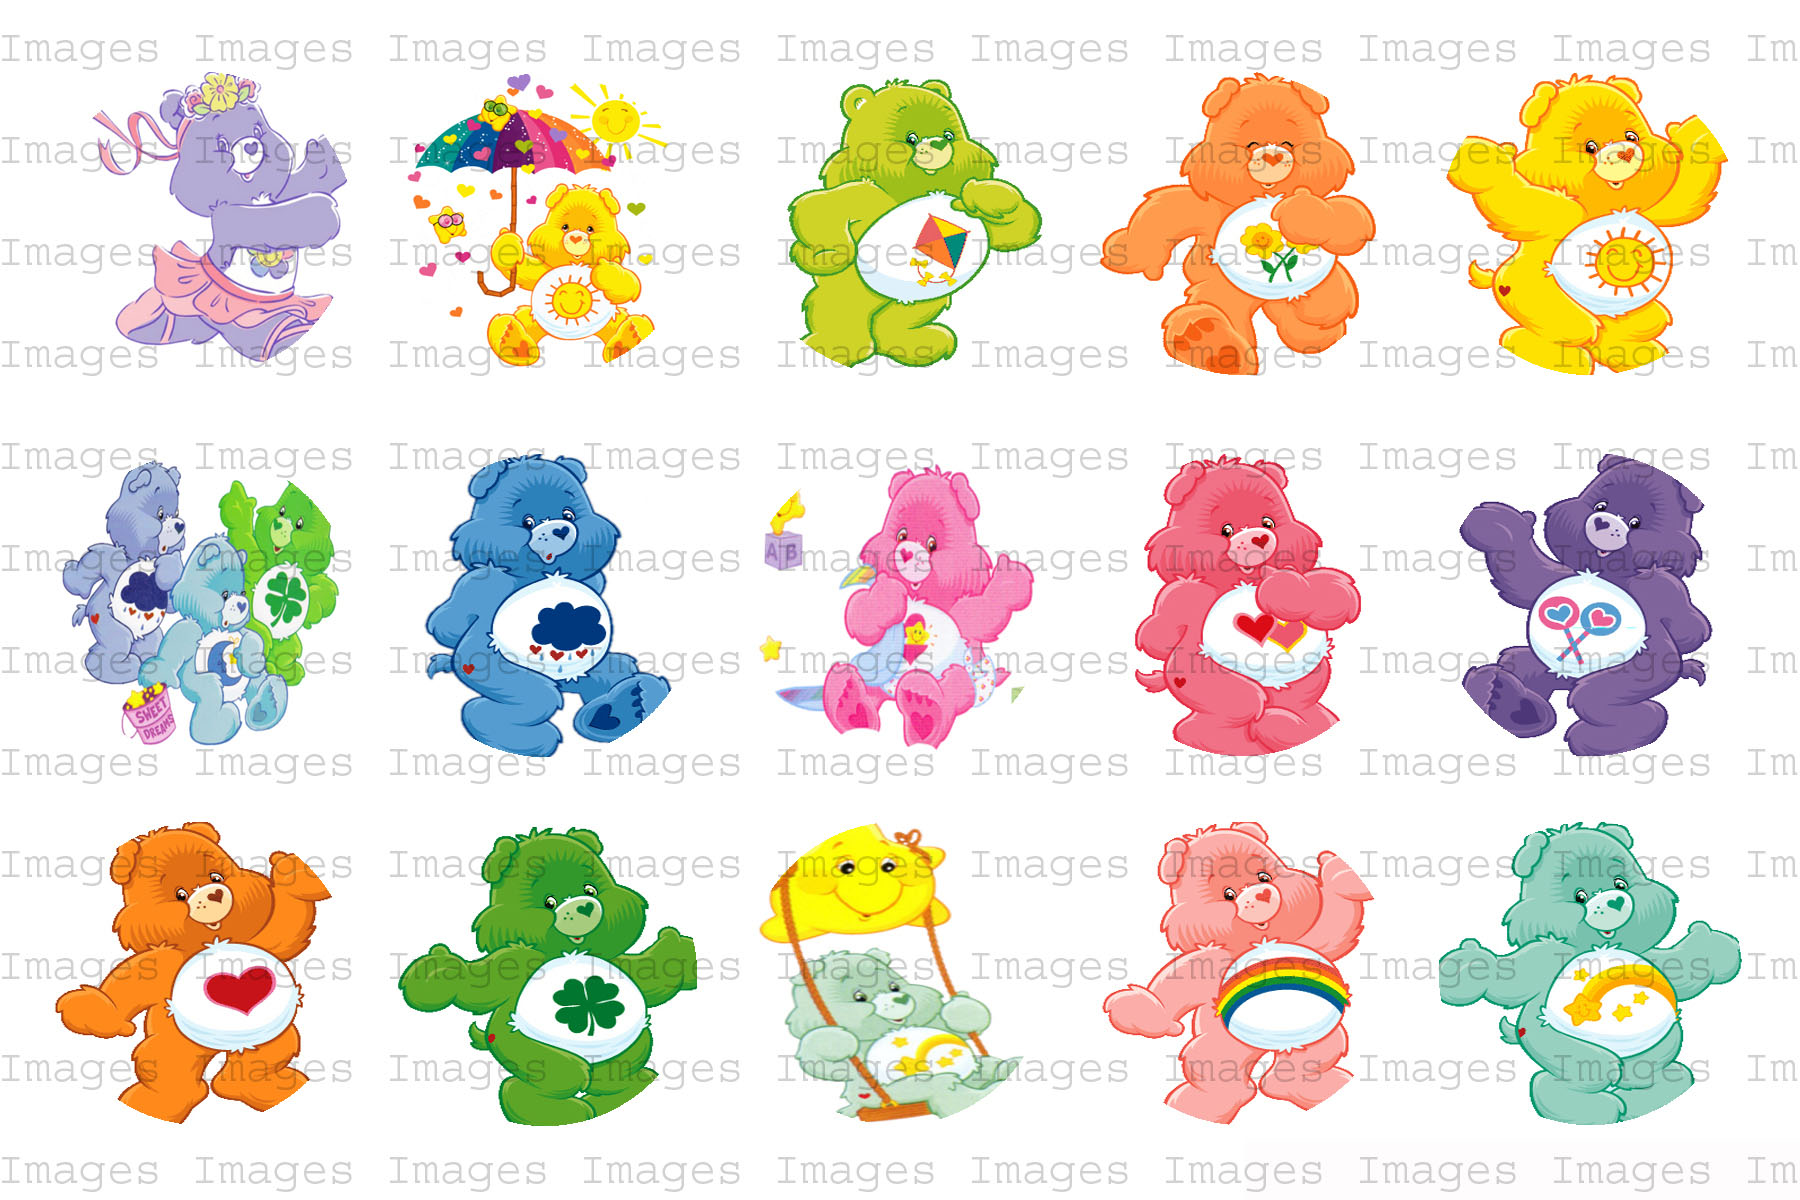 Bottlecapsimages50centpersheet | Carebears | Online Store ... - photo#25